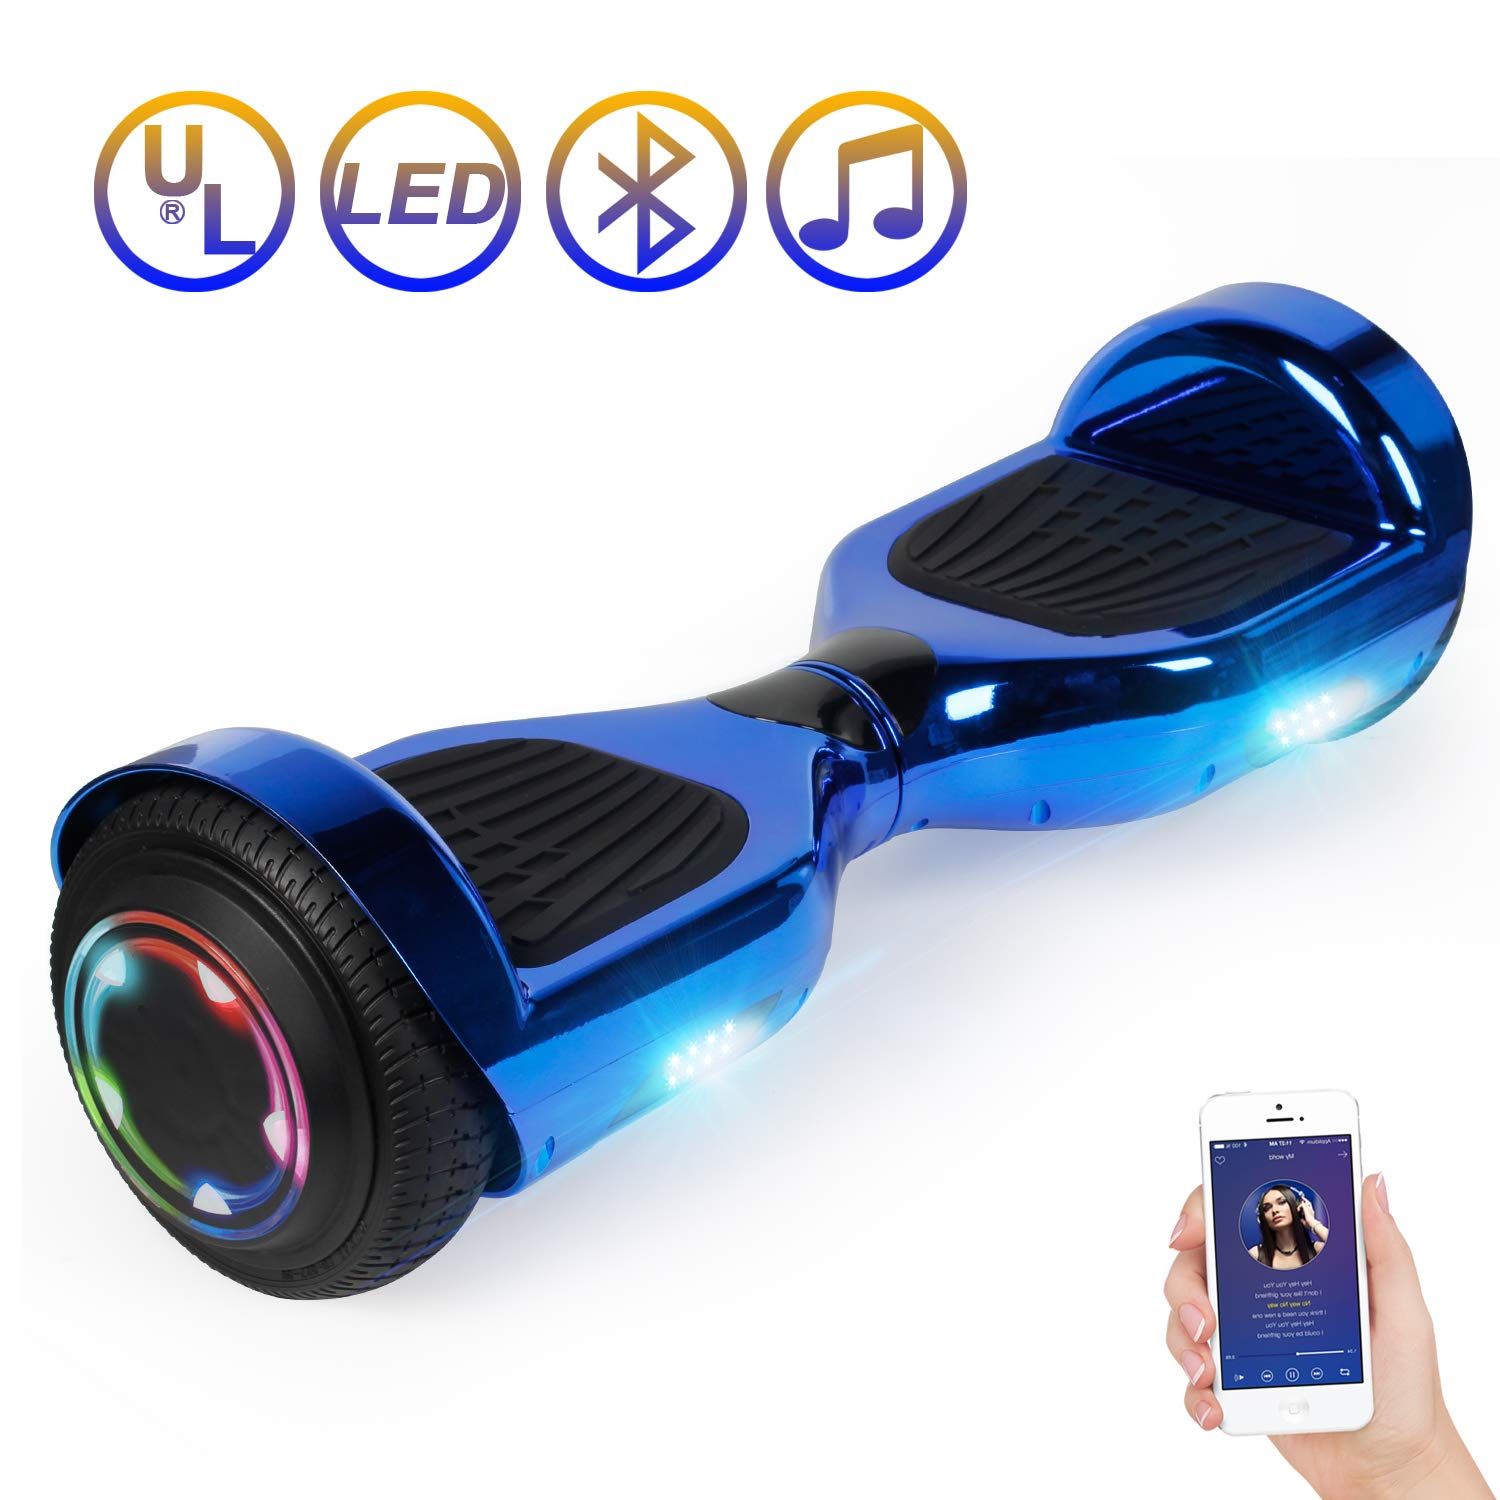 Hoverboard Self Balancing Scooter 6.5'' Two-Wheel Self Balancing Hoverboard with Bluetooth Speaker and LED Lights Electric Scooter for Adult Kids Gift UL 2272 Certified Plating Dazzle U Series - Blue by SISIGAD